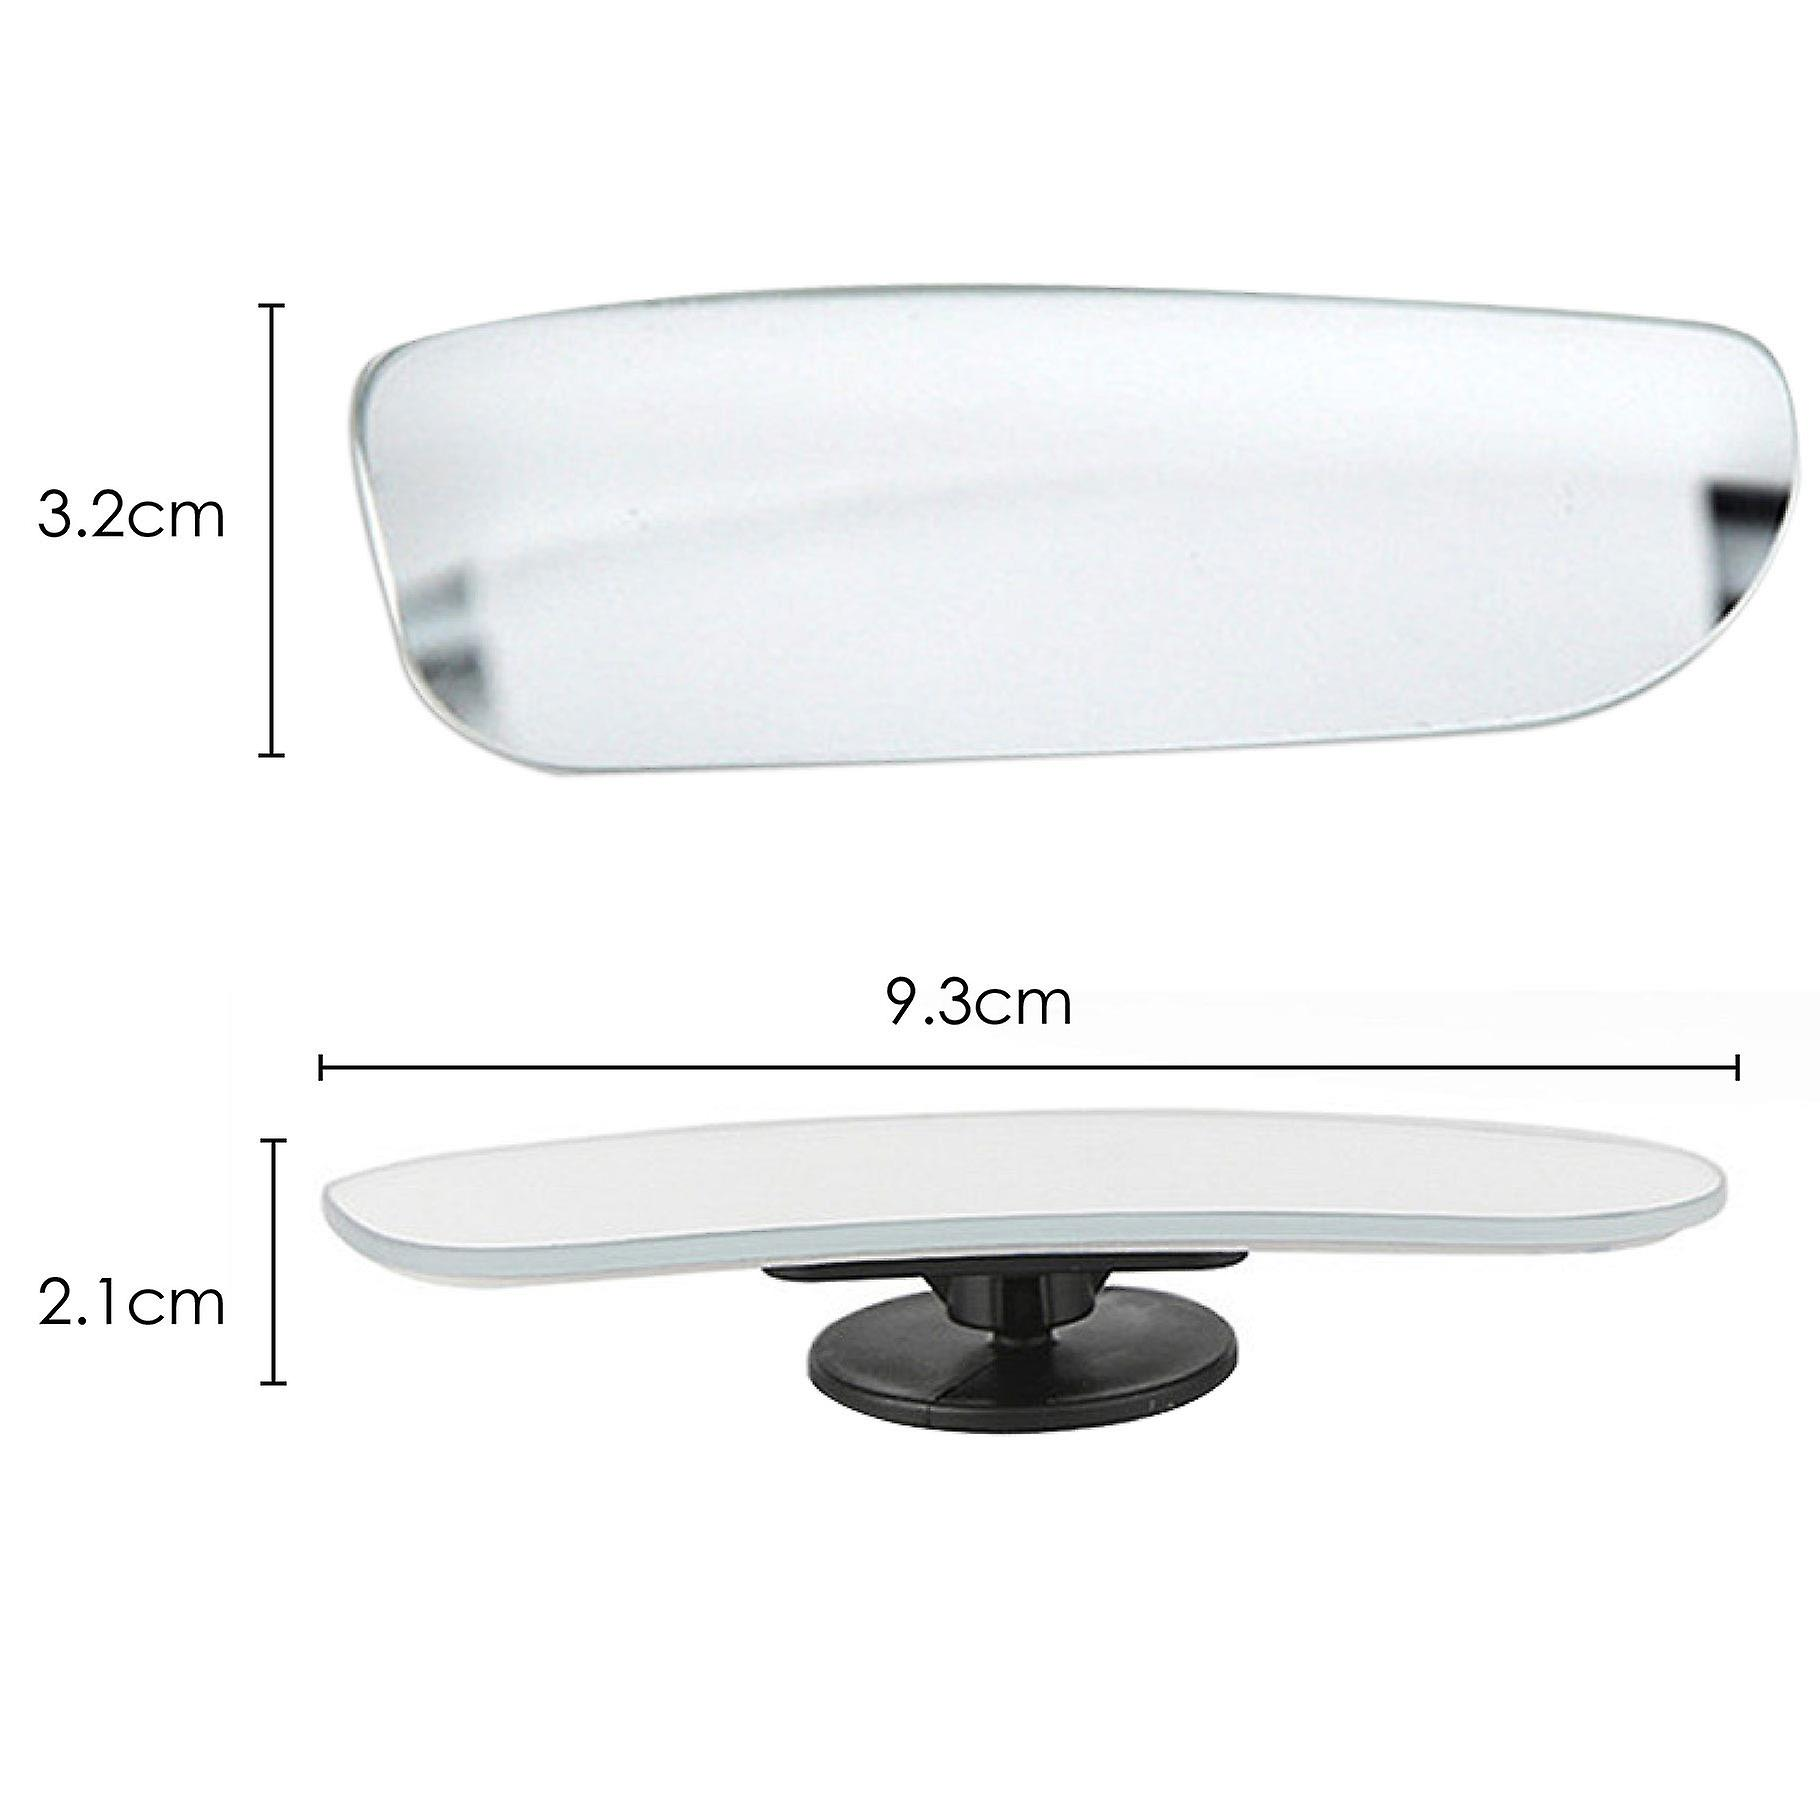 TRIXES Blind Spot Mirrors for Mount Rear View Mirror for Cars Trucks SUV's